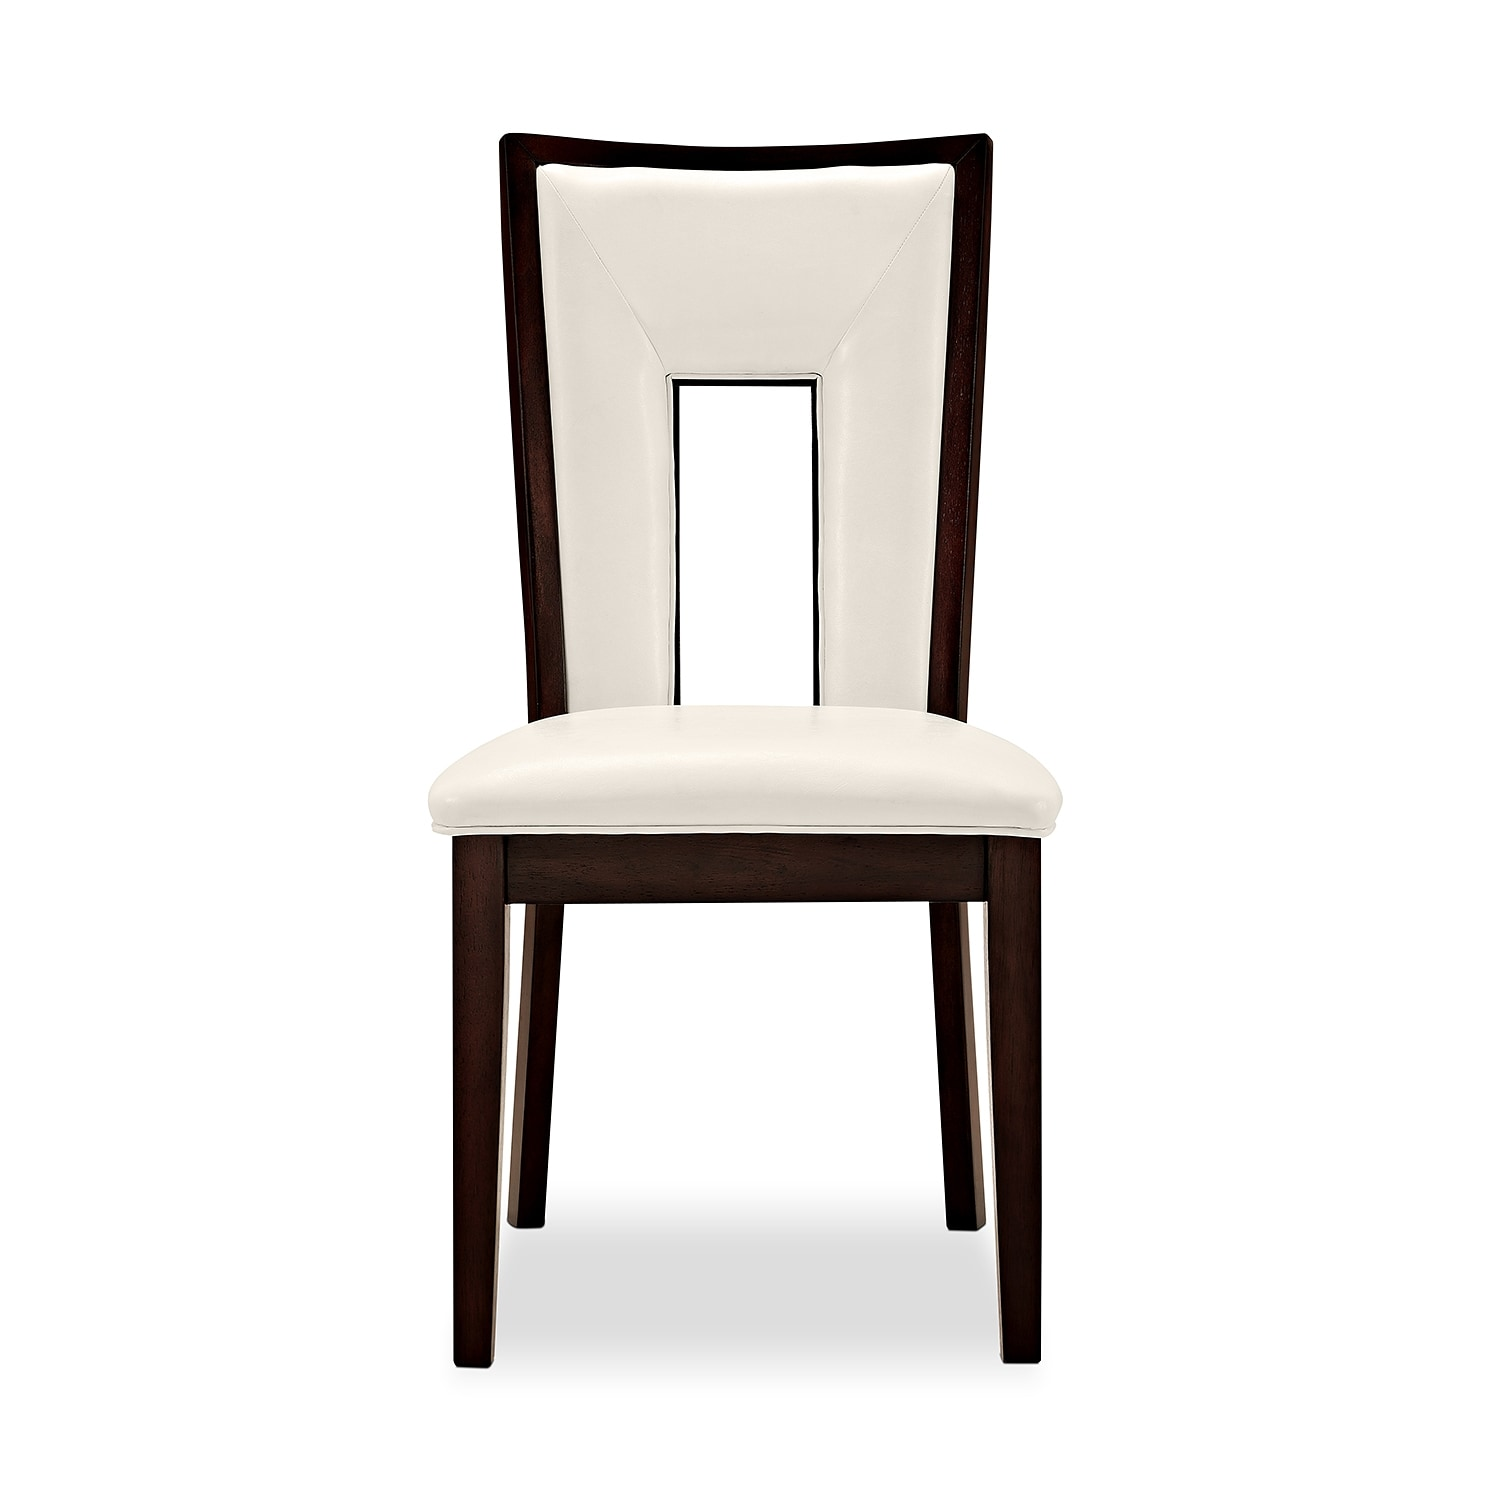 Value City Dining Room Chairs Ashton Dining Room Chair